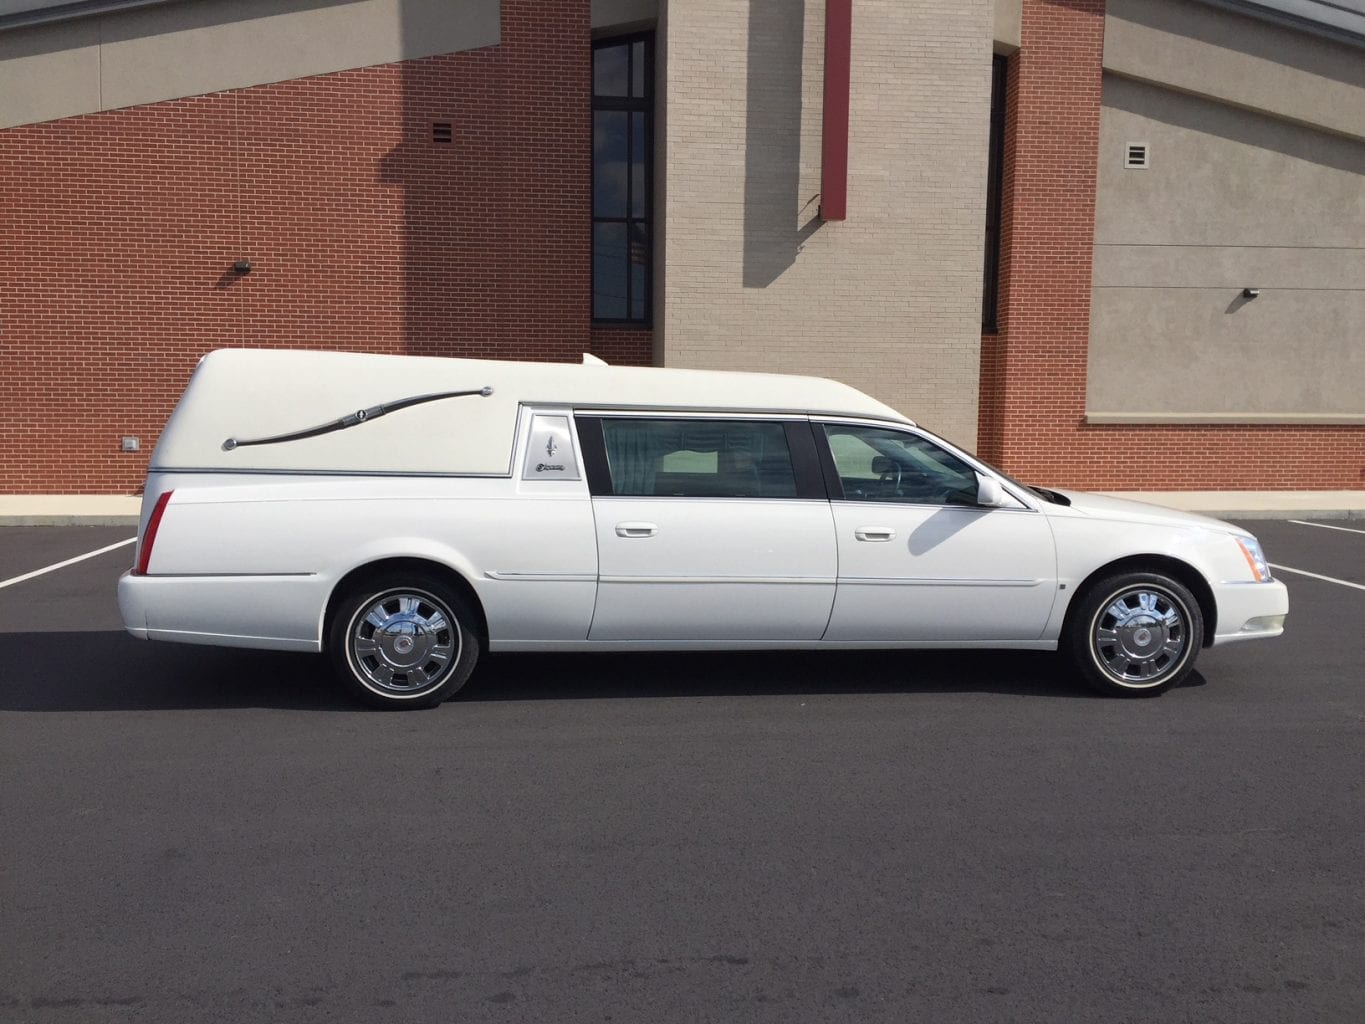 2009 Cadillac Superior Hearse for Sale 1